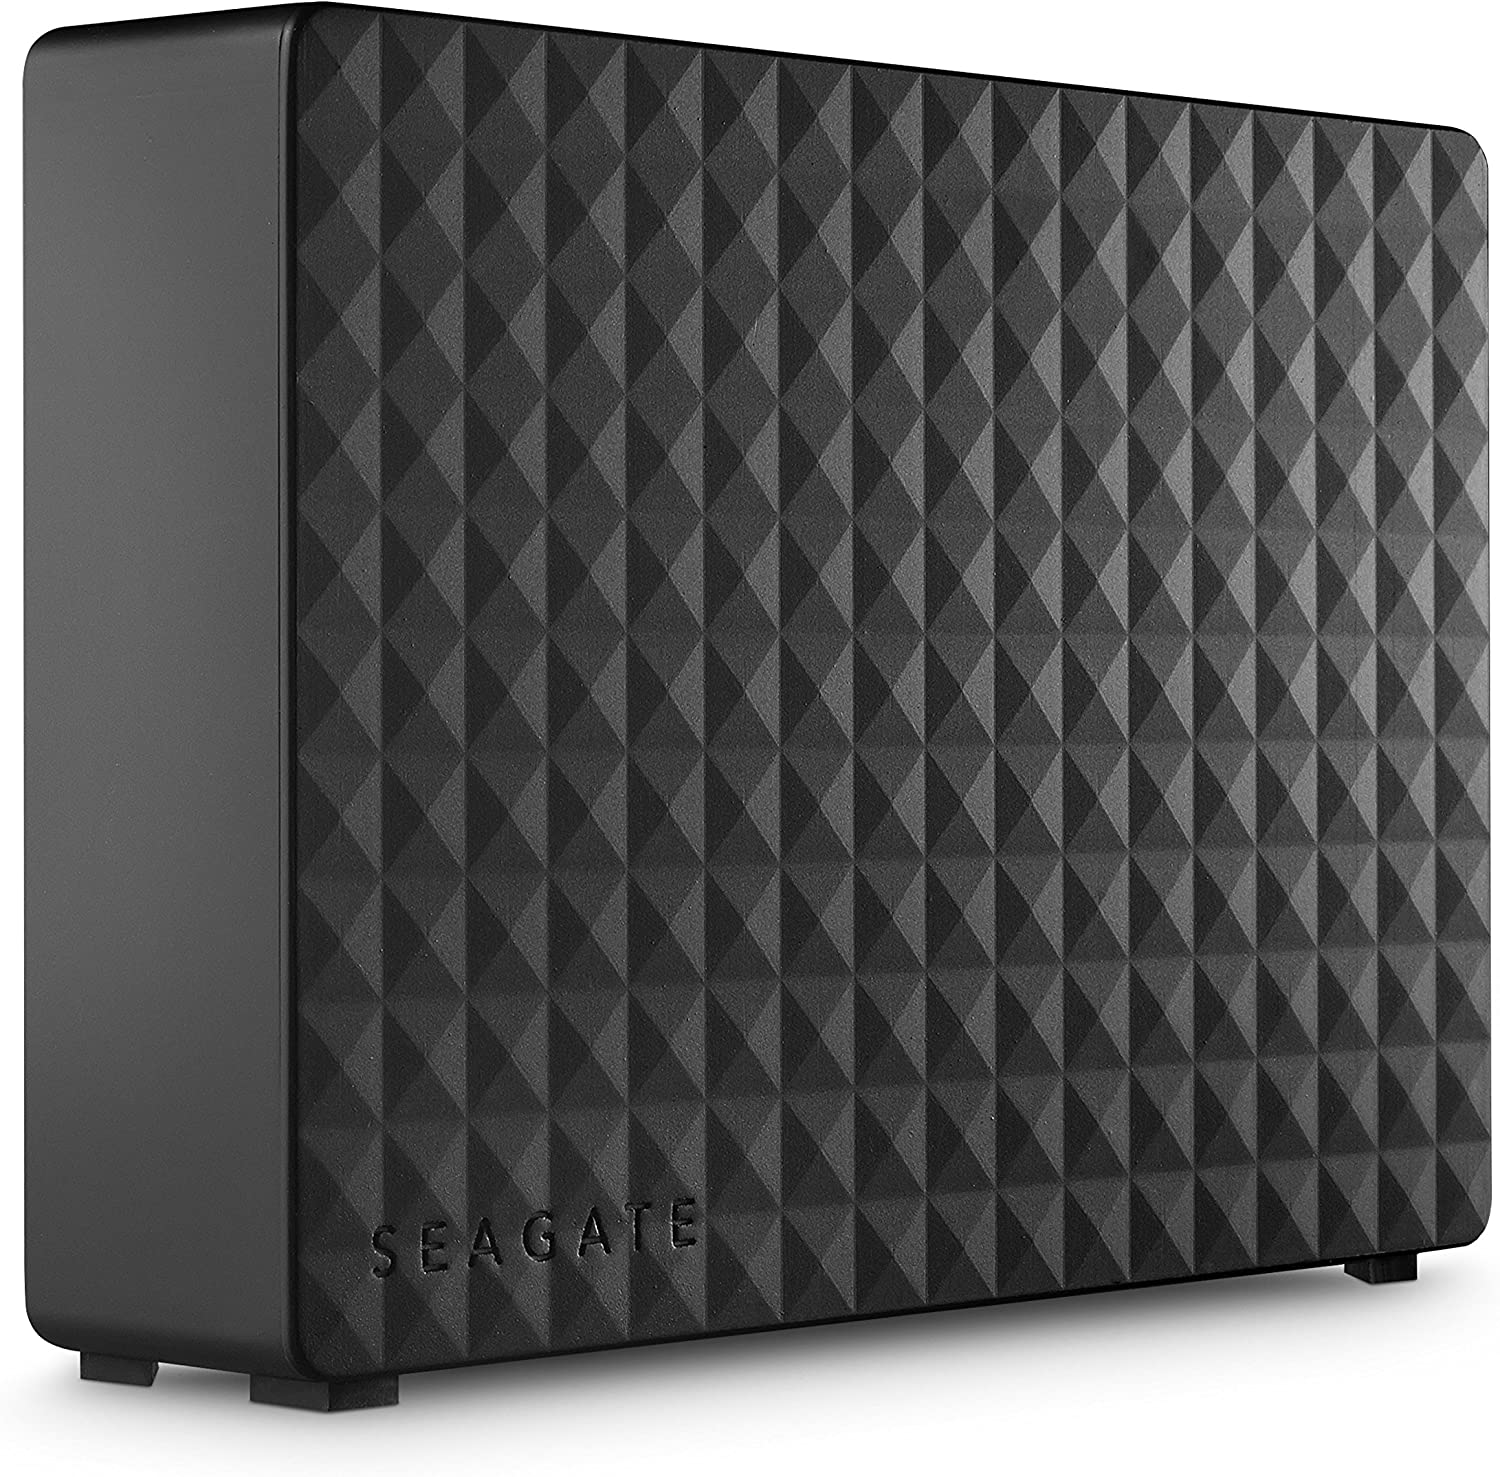 Seagate Expansion Desktop 12TB External Hard Drive HDD - USB 3.0 for PC Laptop (STEB12000402)